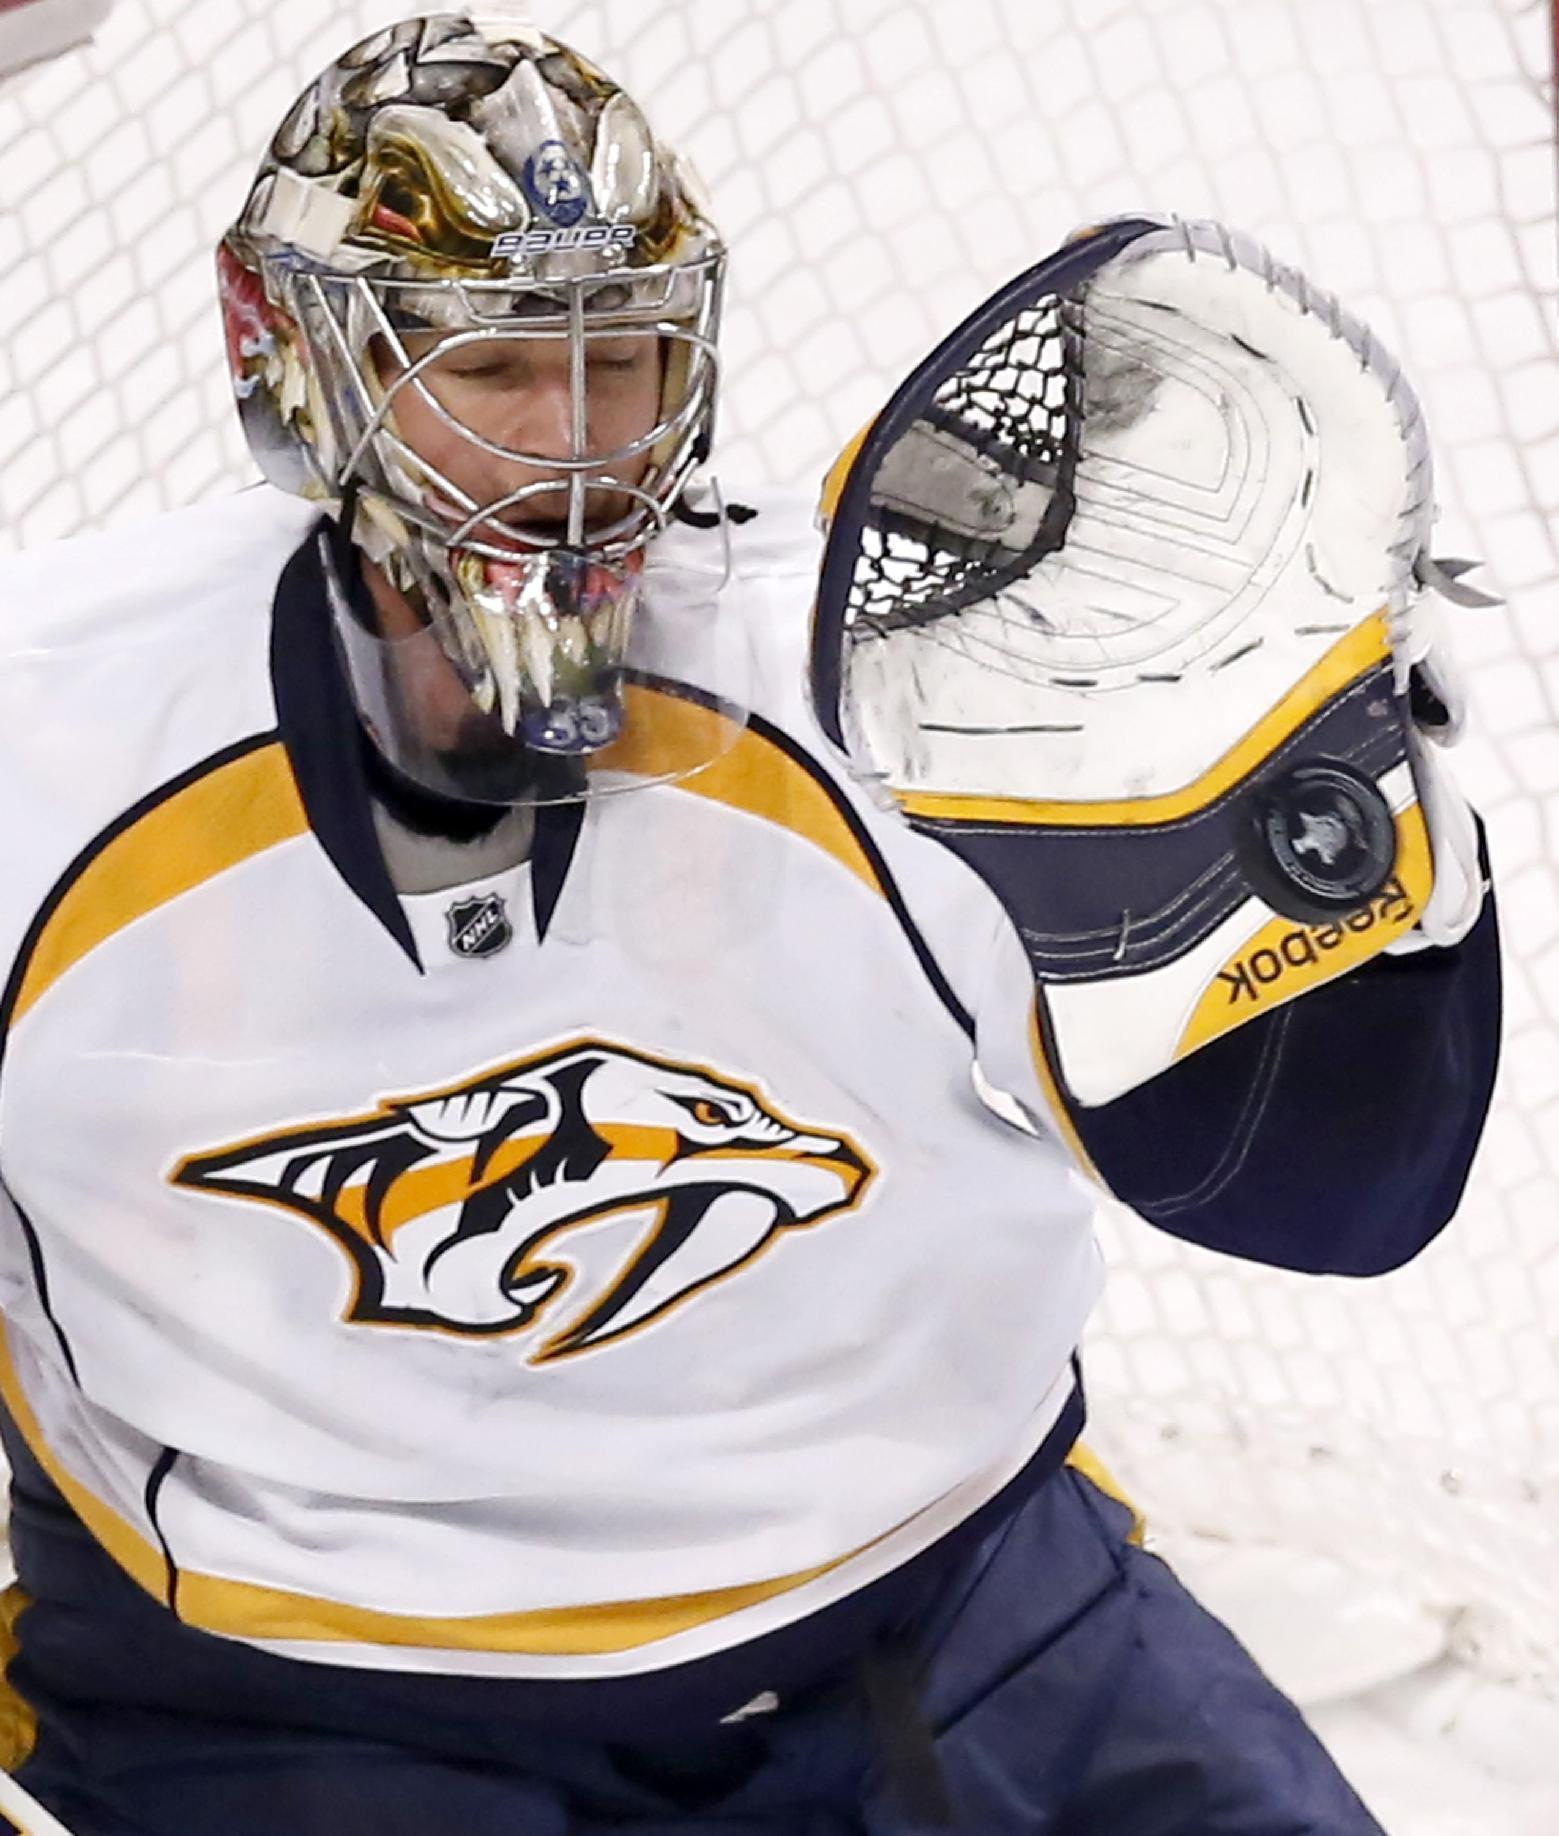 Price, Dubnyk, Rinne finalists for Vezina Trophy